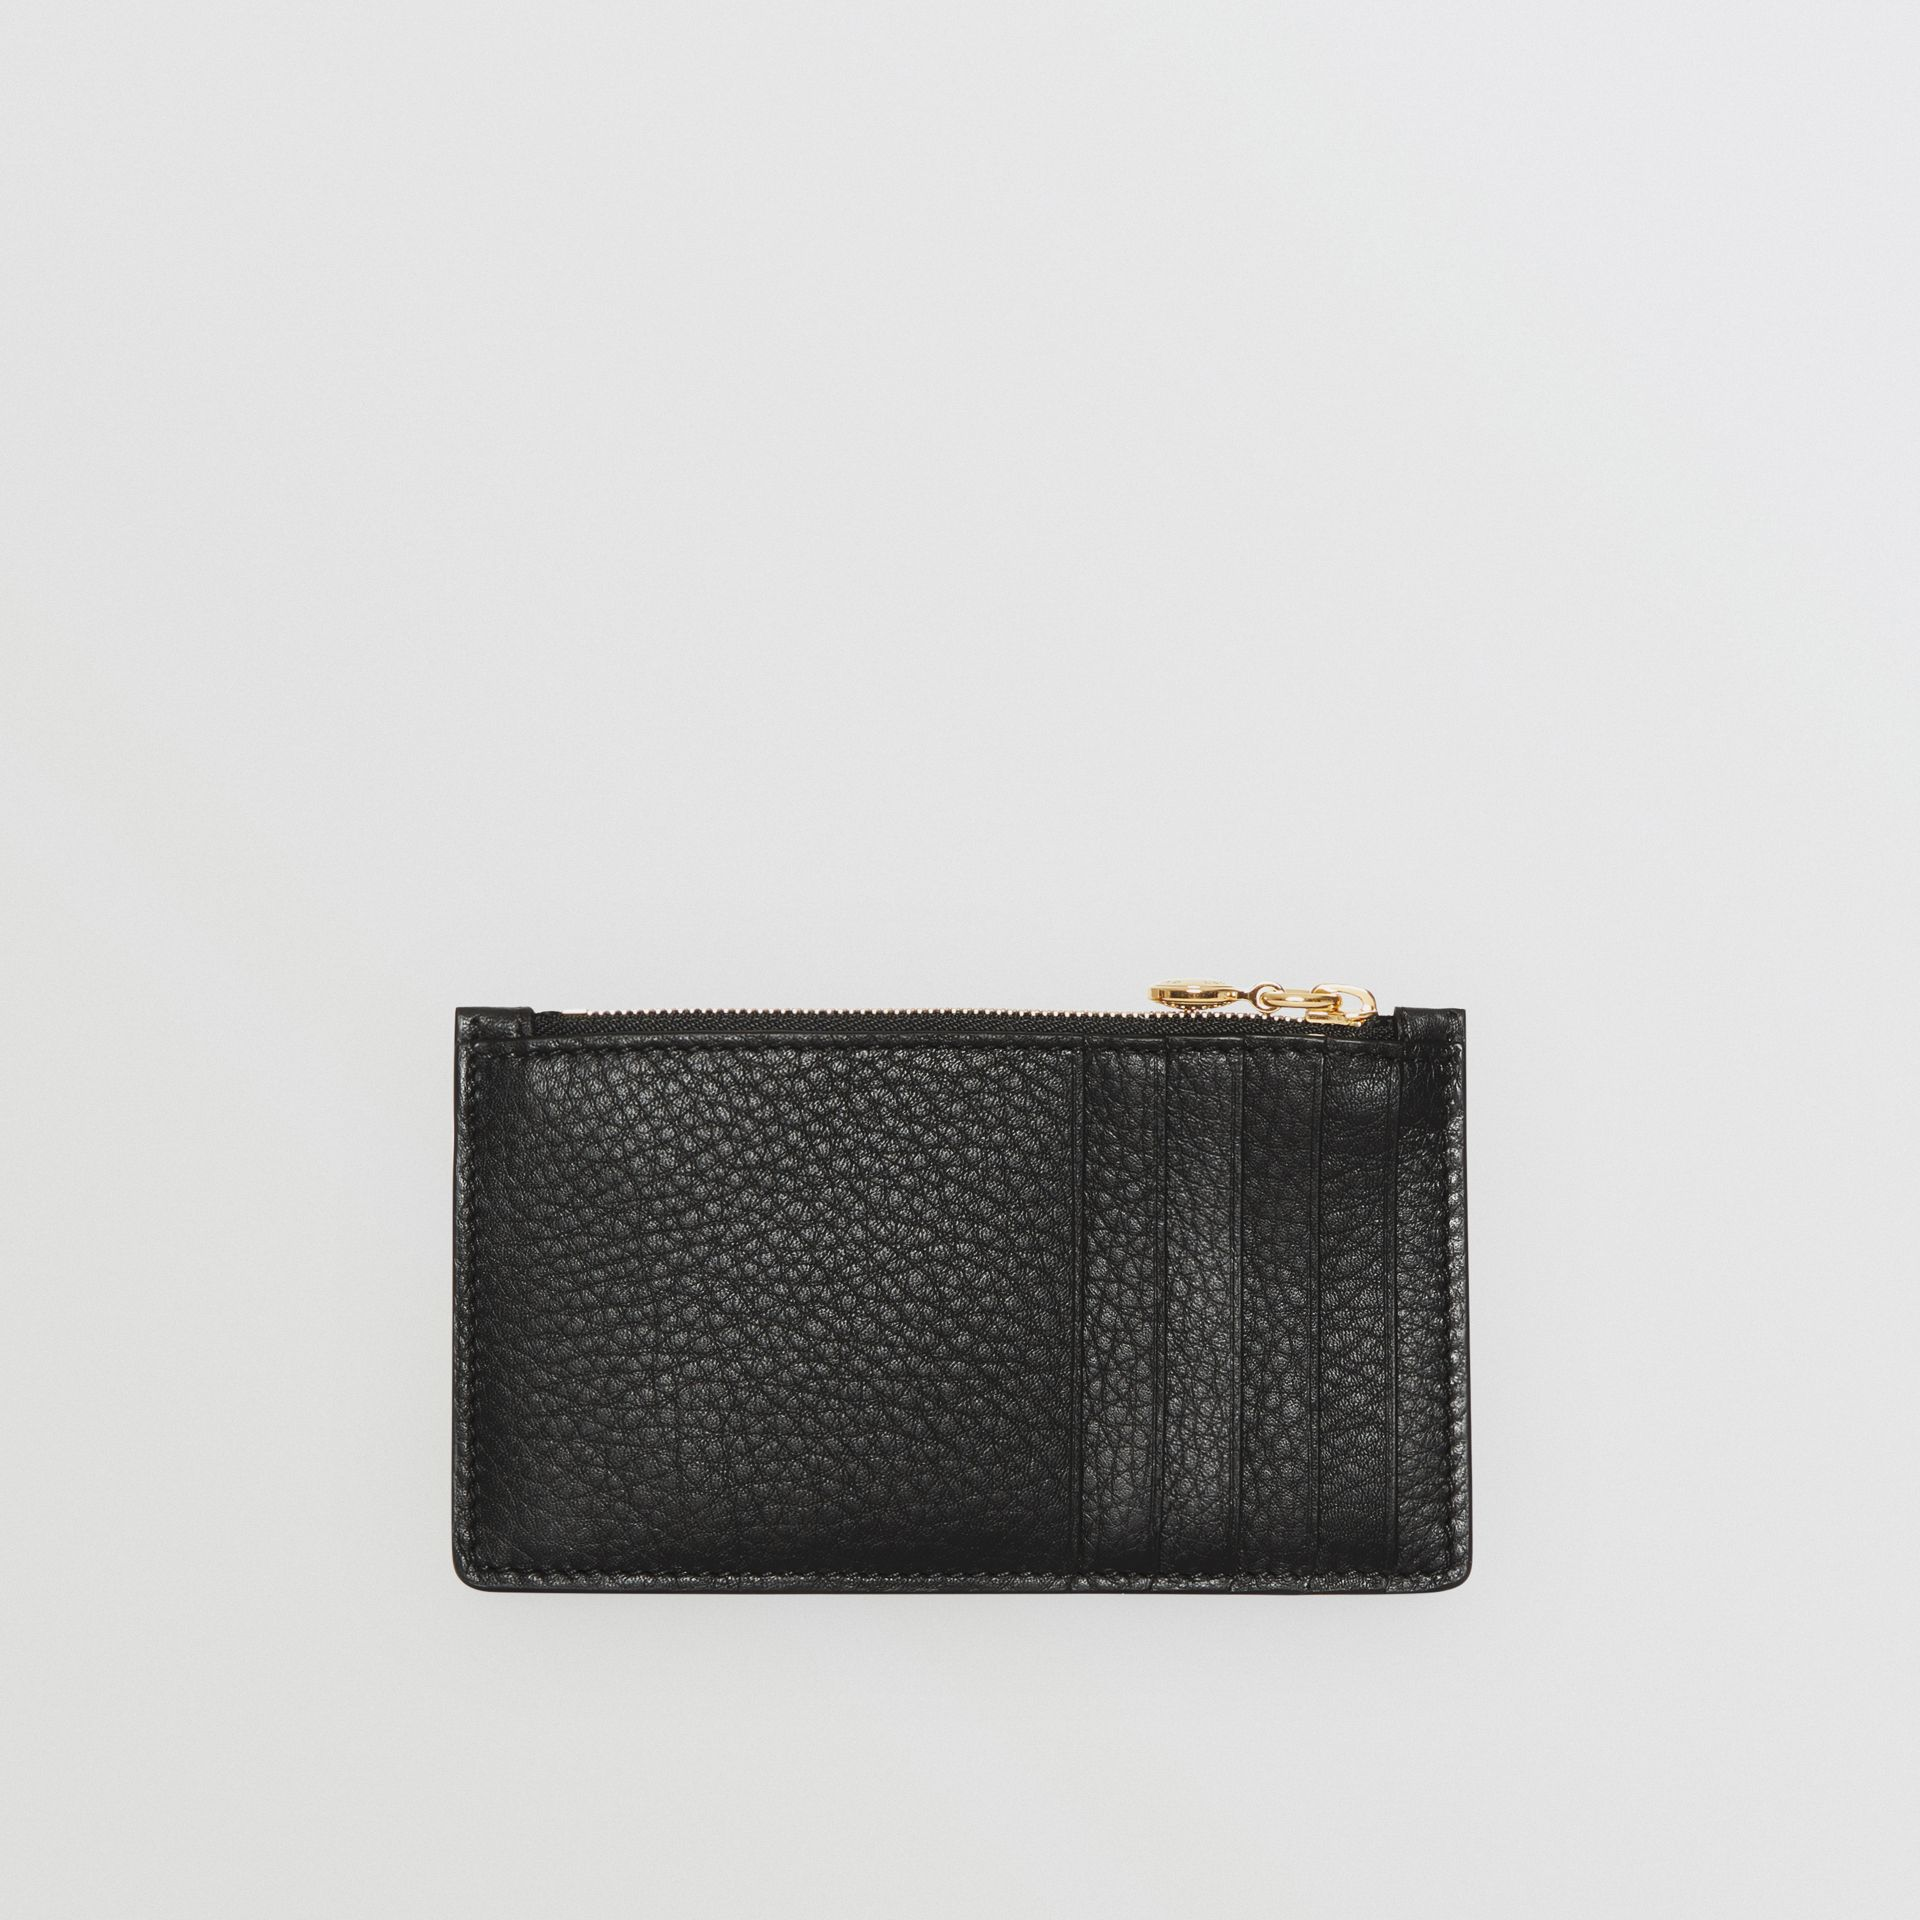 Porte-cartes zippé en cuir (Noir) | Burberry - photo de la galerie 4